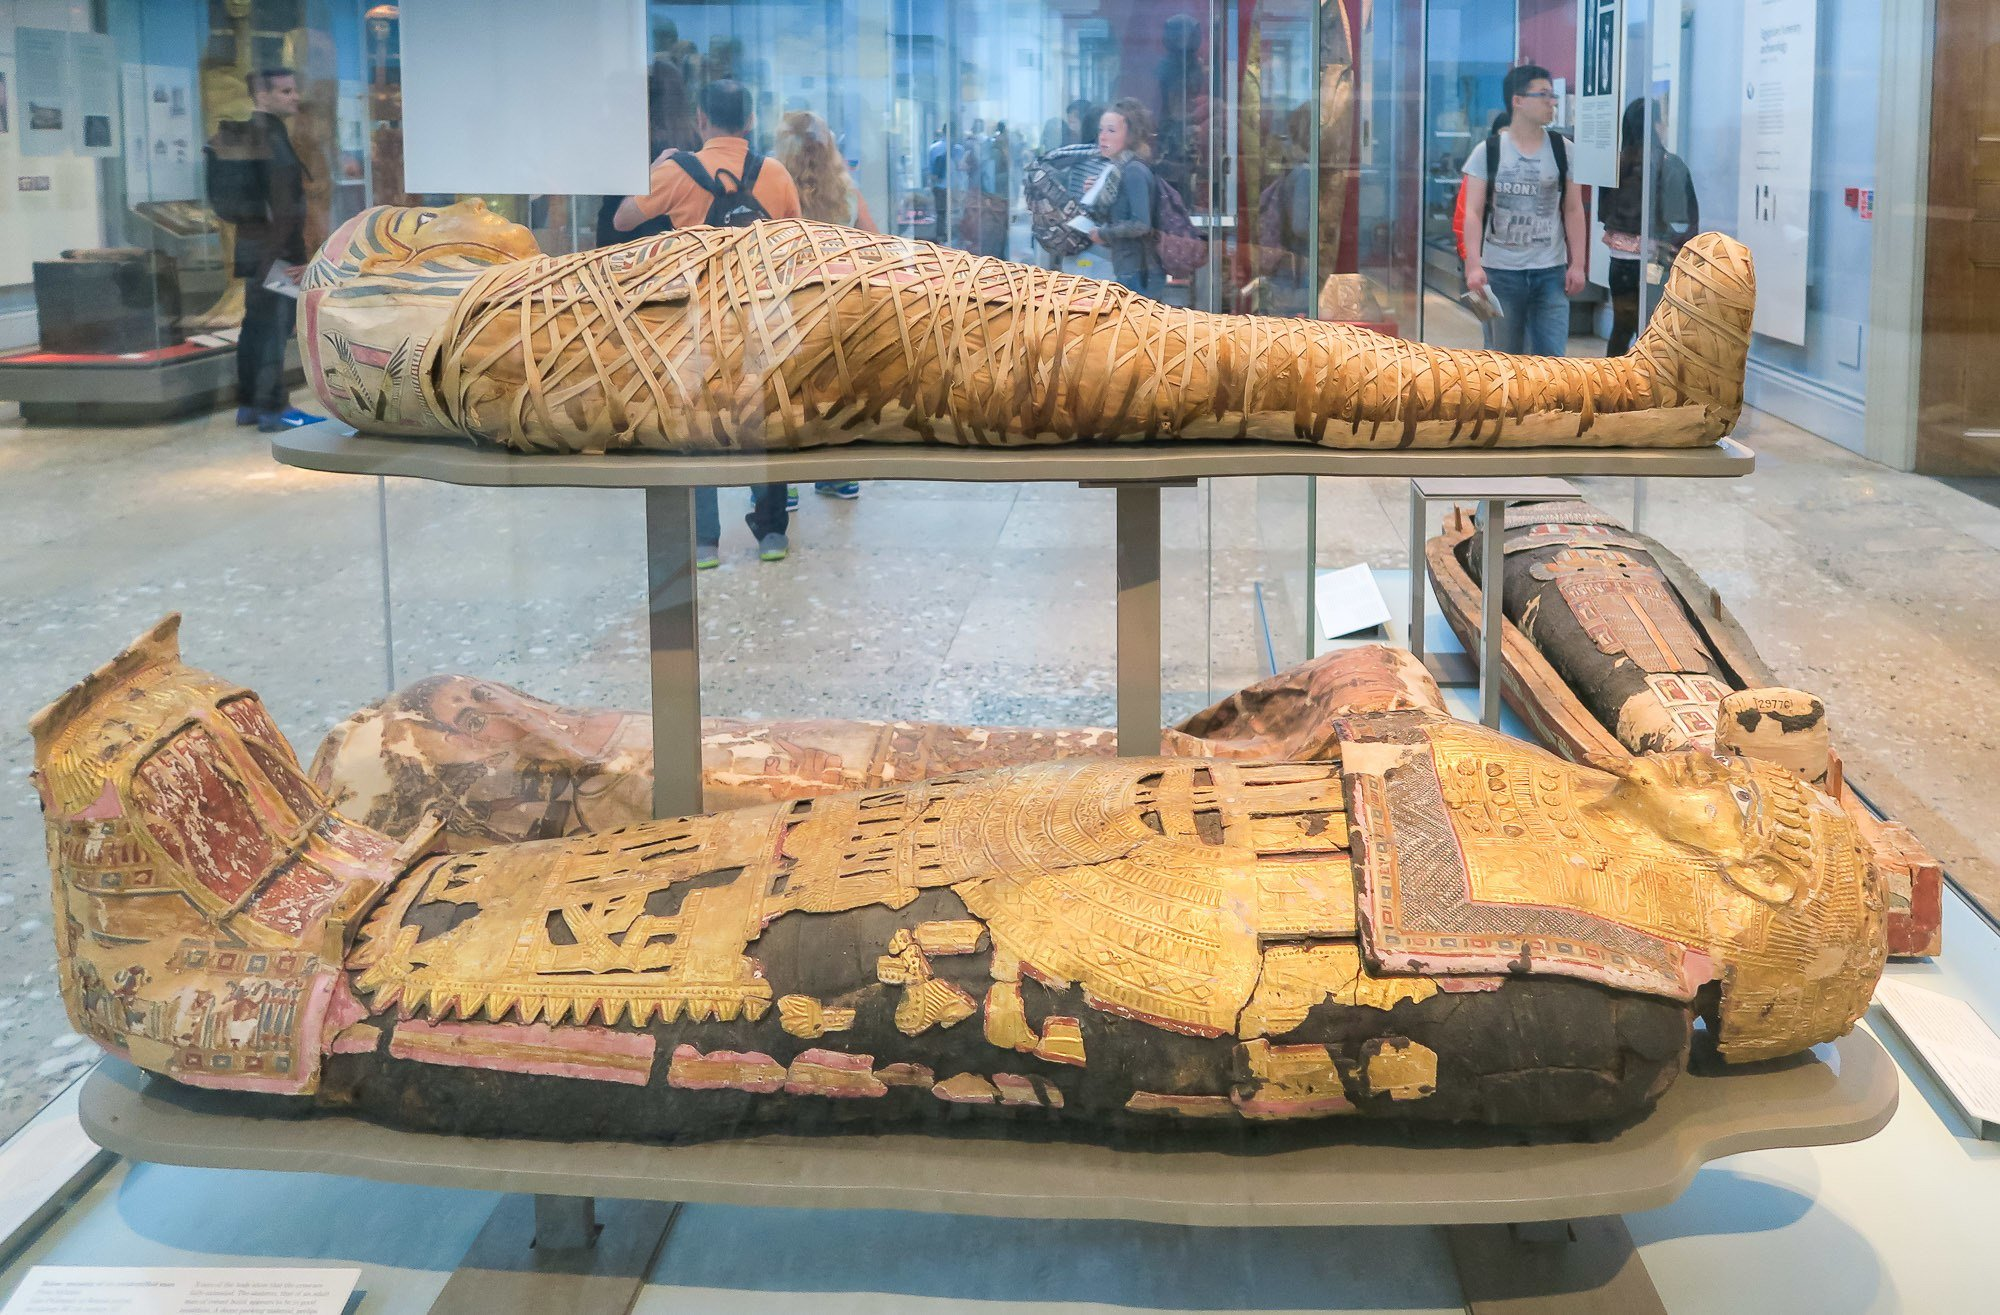 Among the most iconic objects on public display at the British Museum, several adjoining rooms contain an eye-popping display of Ancient Egyptian mummies, coffins, funerary masks and other burial and funerary items.